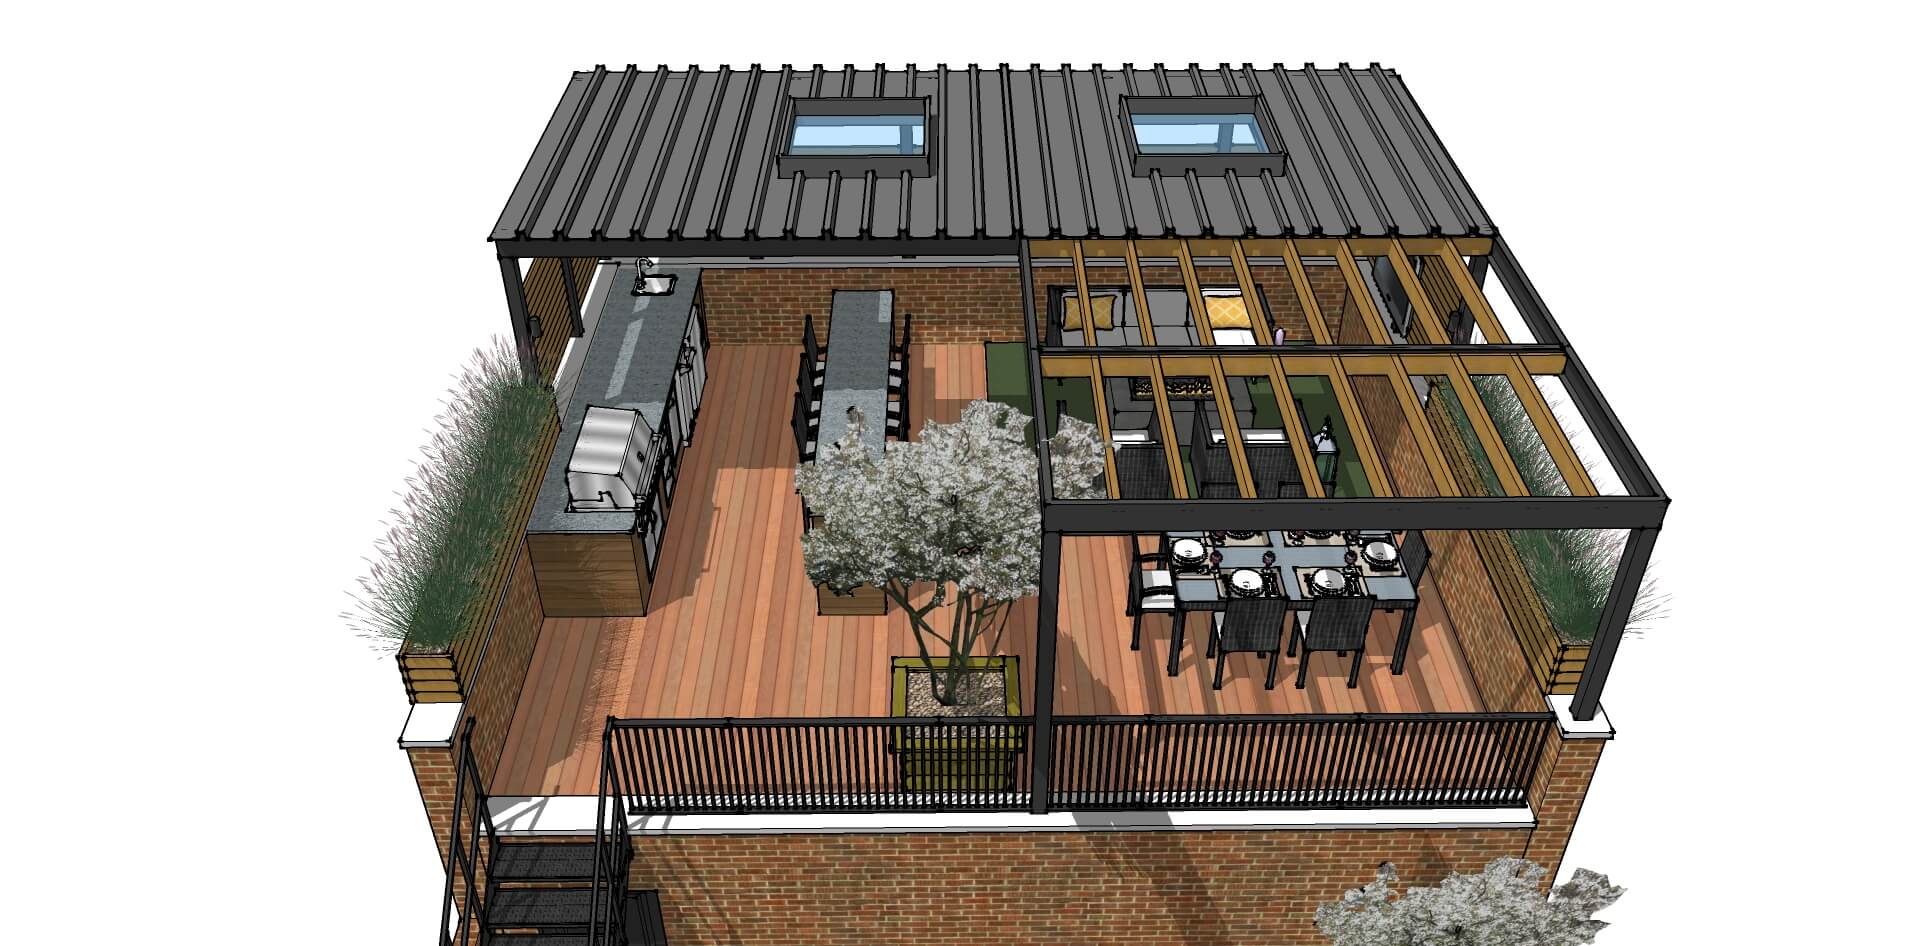 Roof deck renovation and modernization lakeview chicago for Garage deck